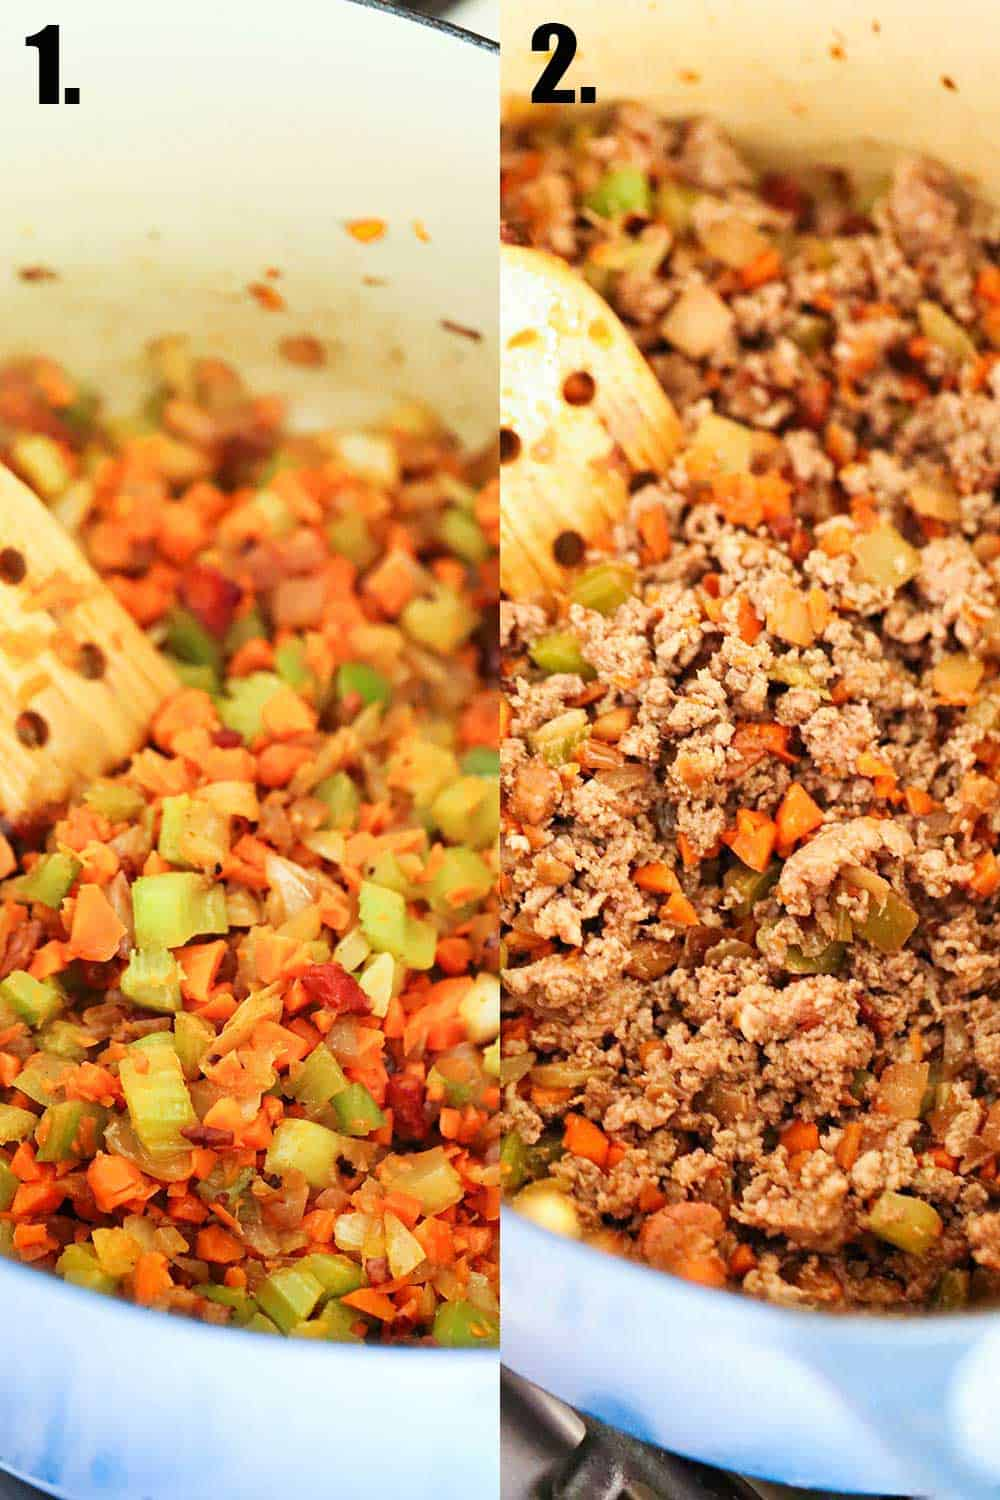 2 side-by-side photos, 1st of a mirapoix being sautéed in a blue Dutch oven, the 2nd is the same mixture with ground meat added in.